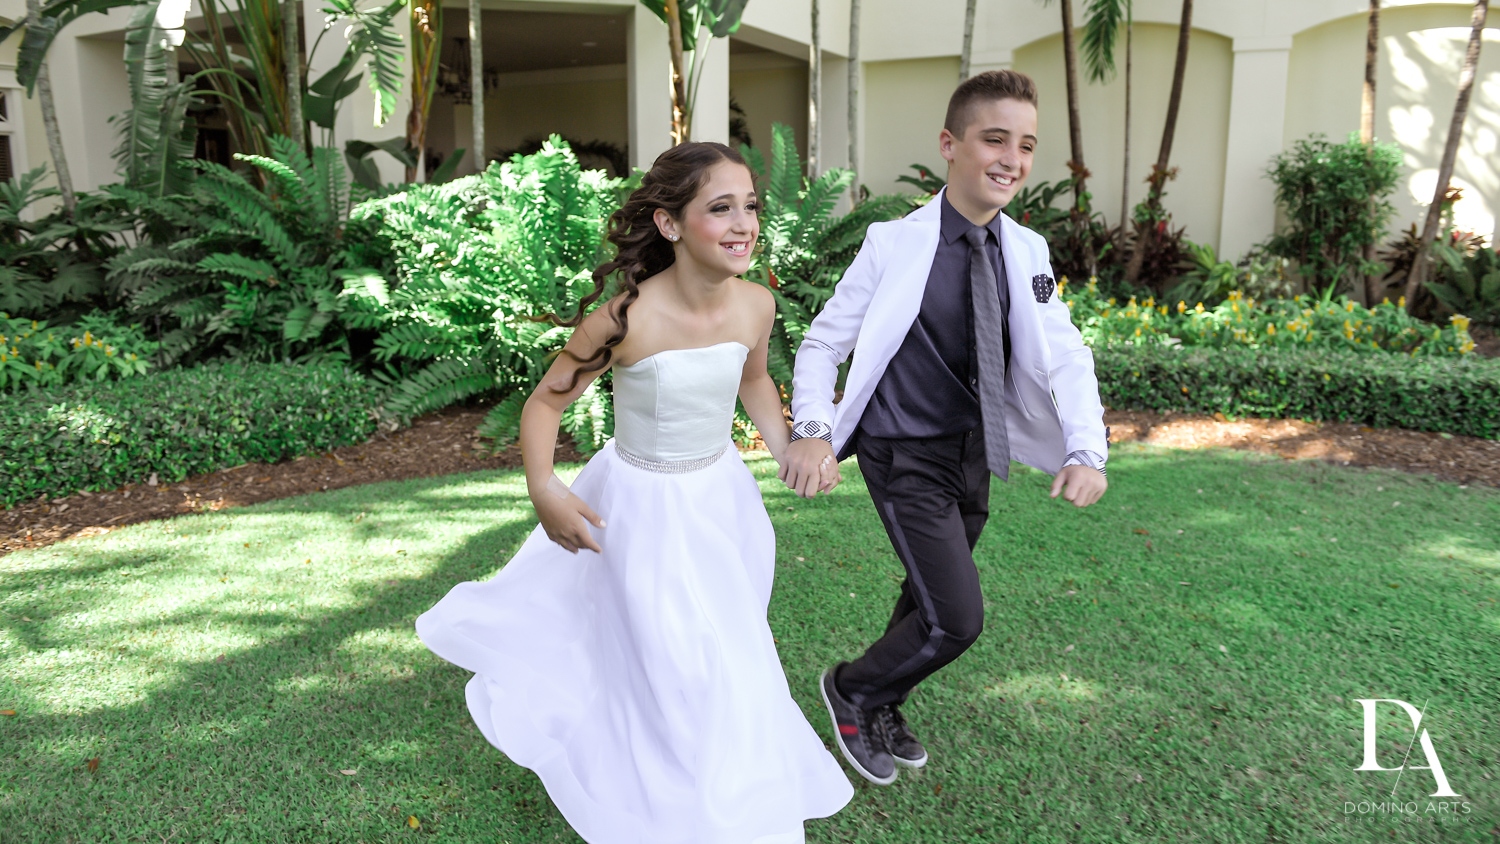 fun portraits at Luxury B'Nai Mitzvah at Woodfield Country Club by Domino Arts Photography